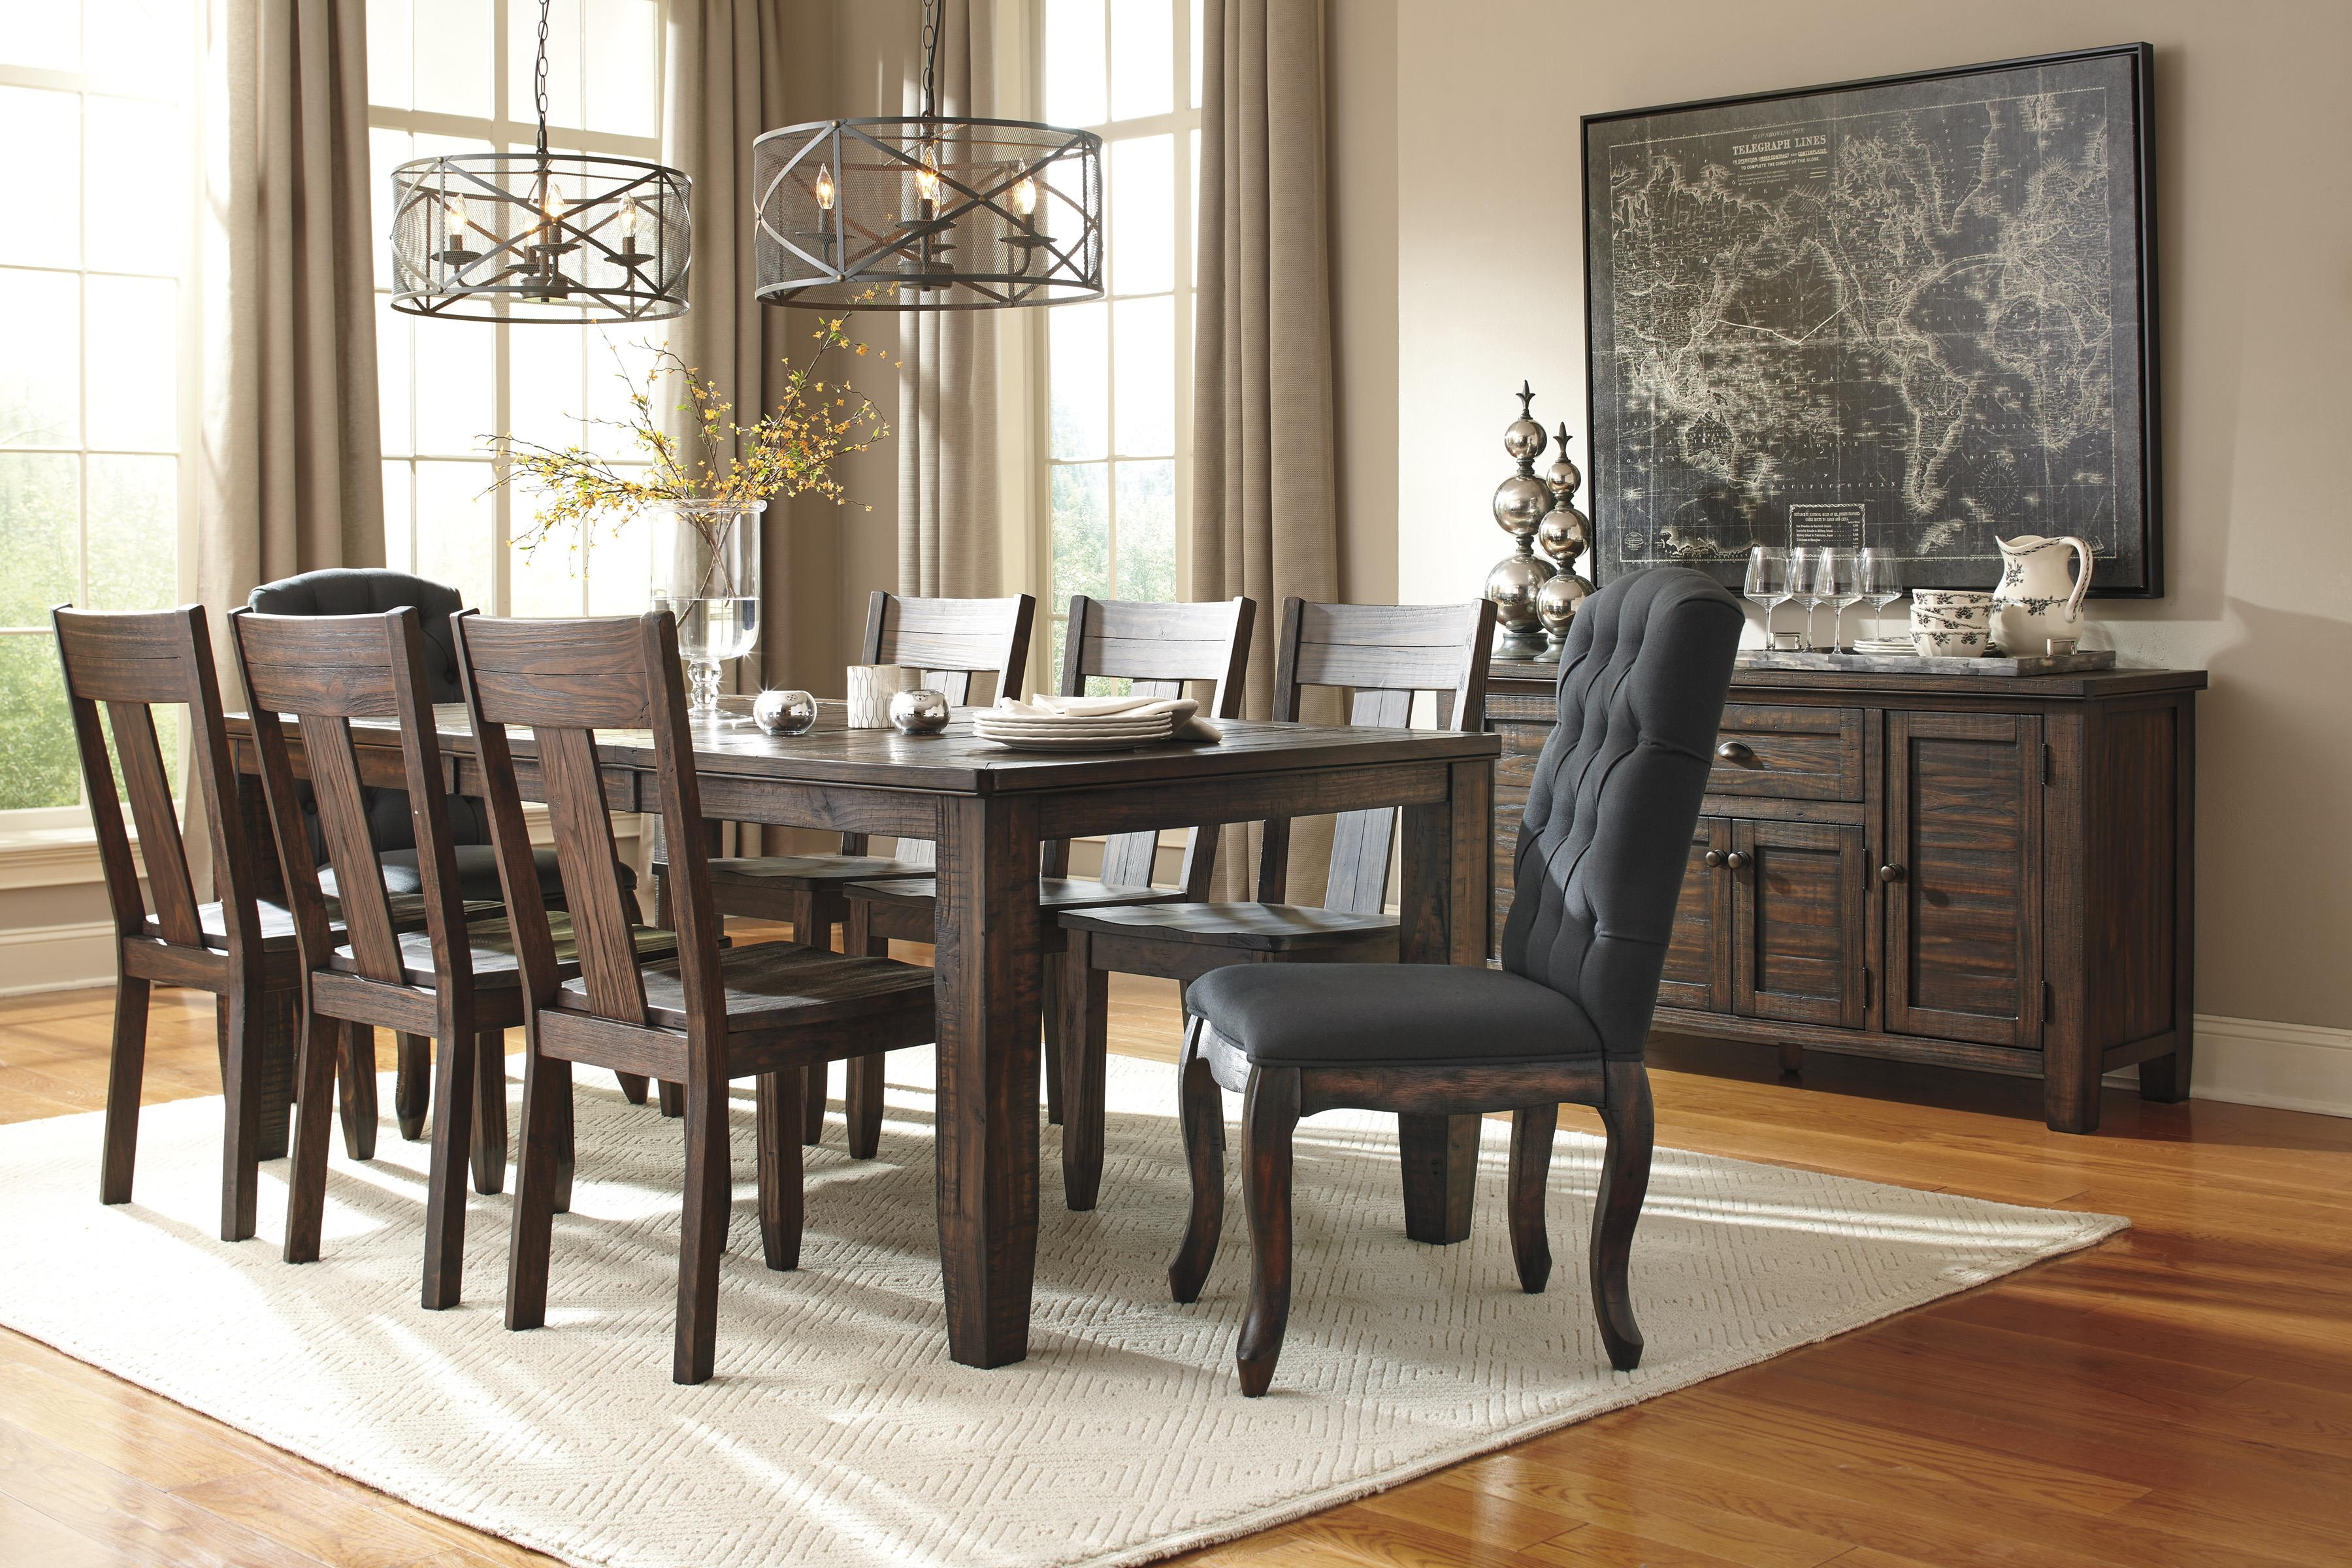 Signature Design by Ashley Trudell Formal Dining Room Group - Item Number: D658 Dining Room Group 10